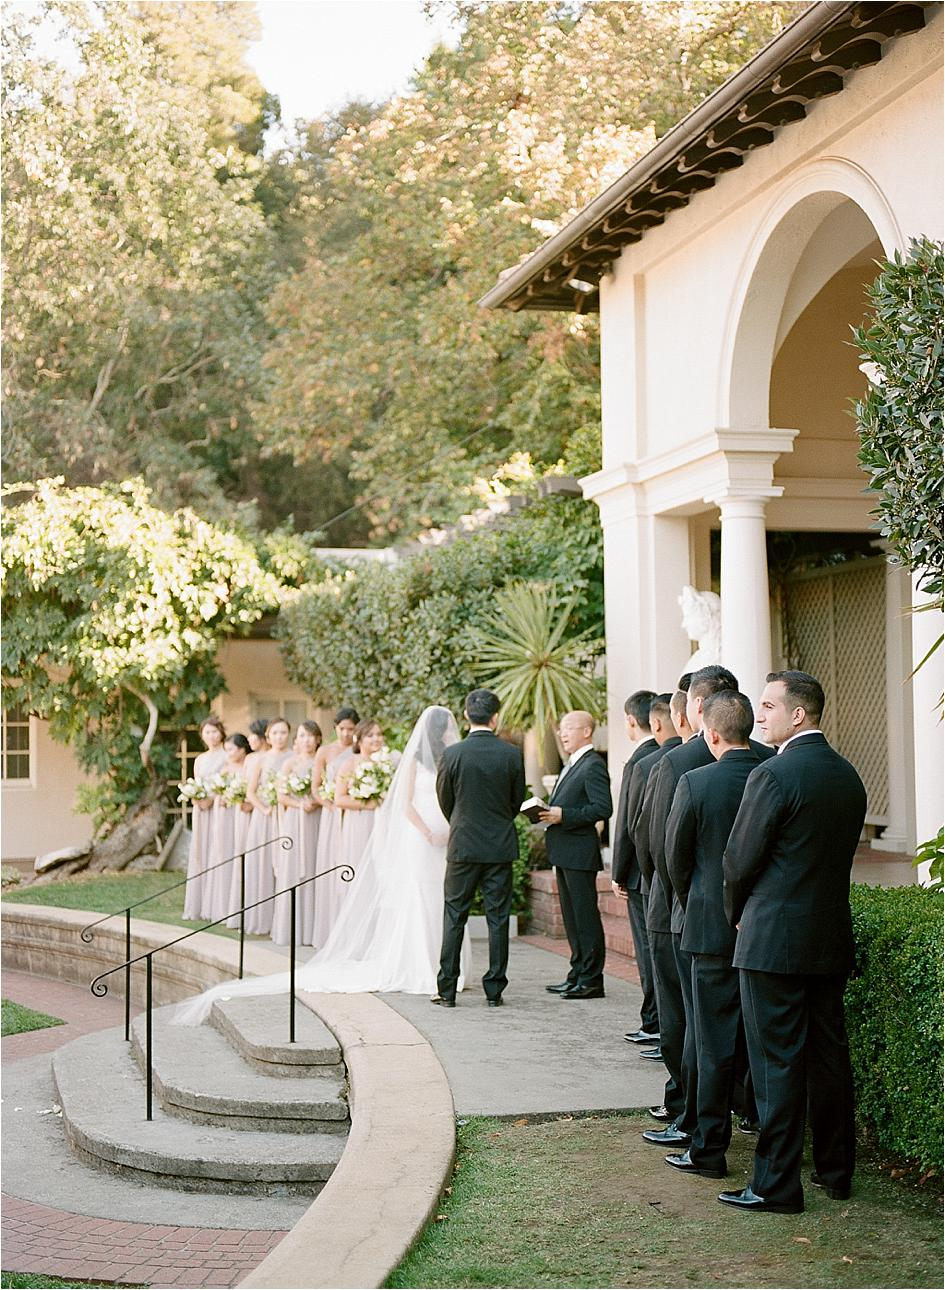 Villa Montalvo Served As The Perfect Backdrop For This